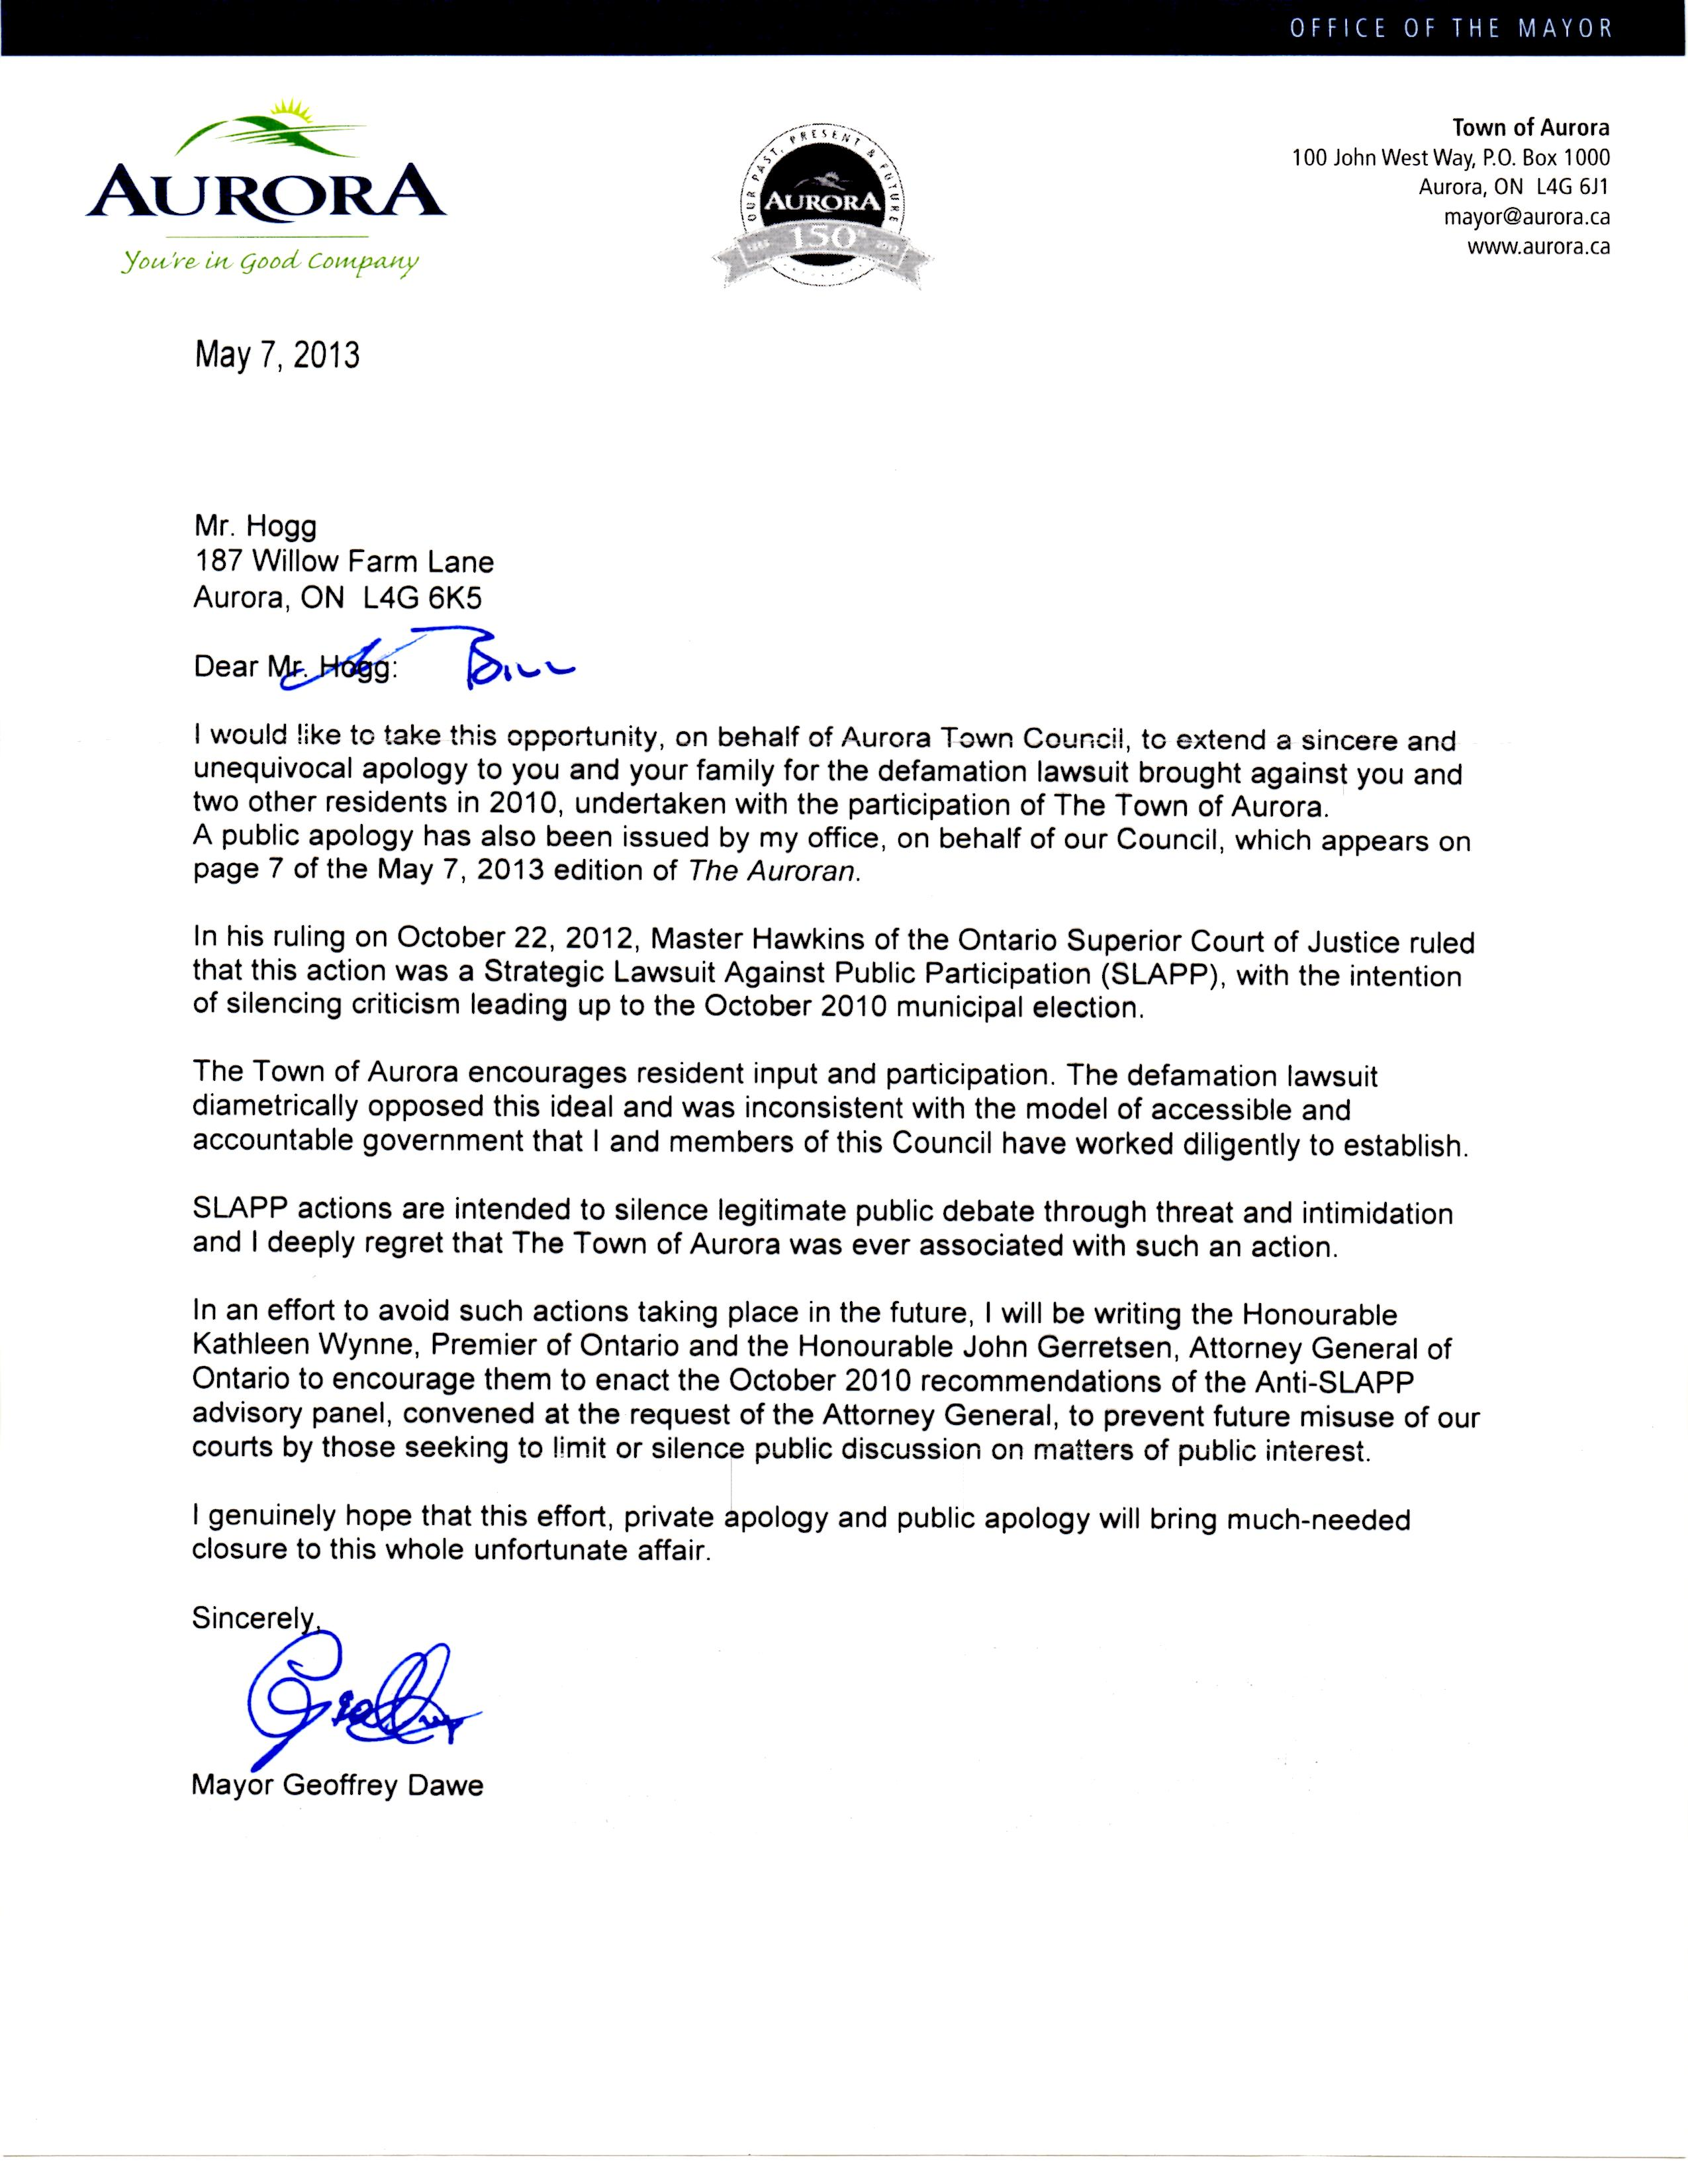 aurora citizen town apology letter